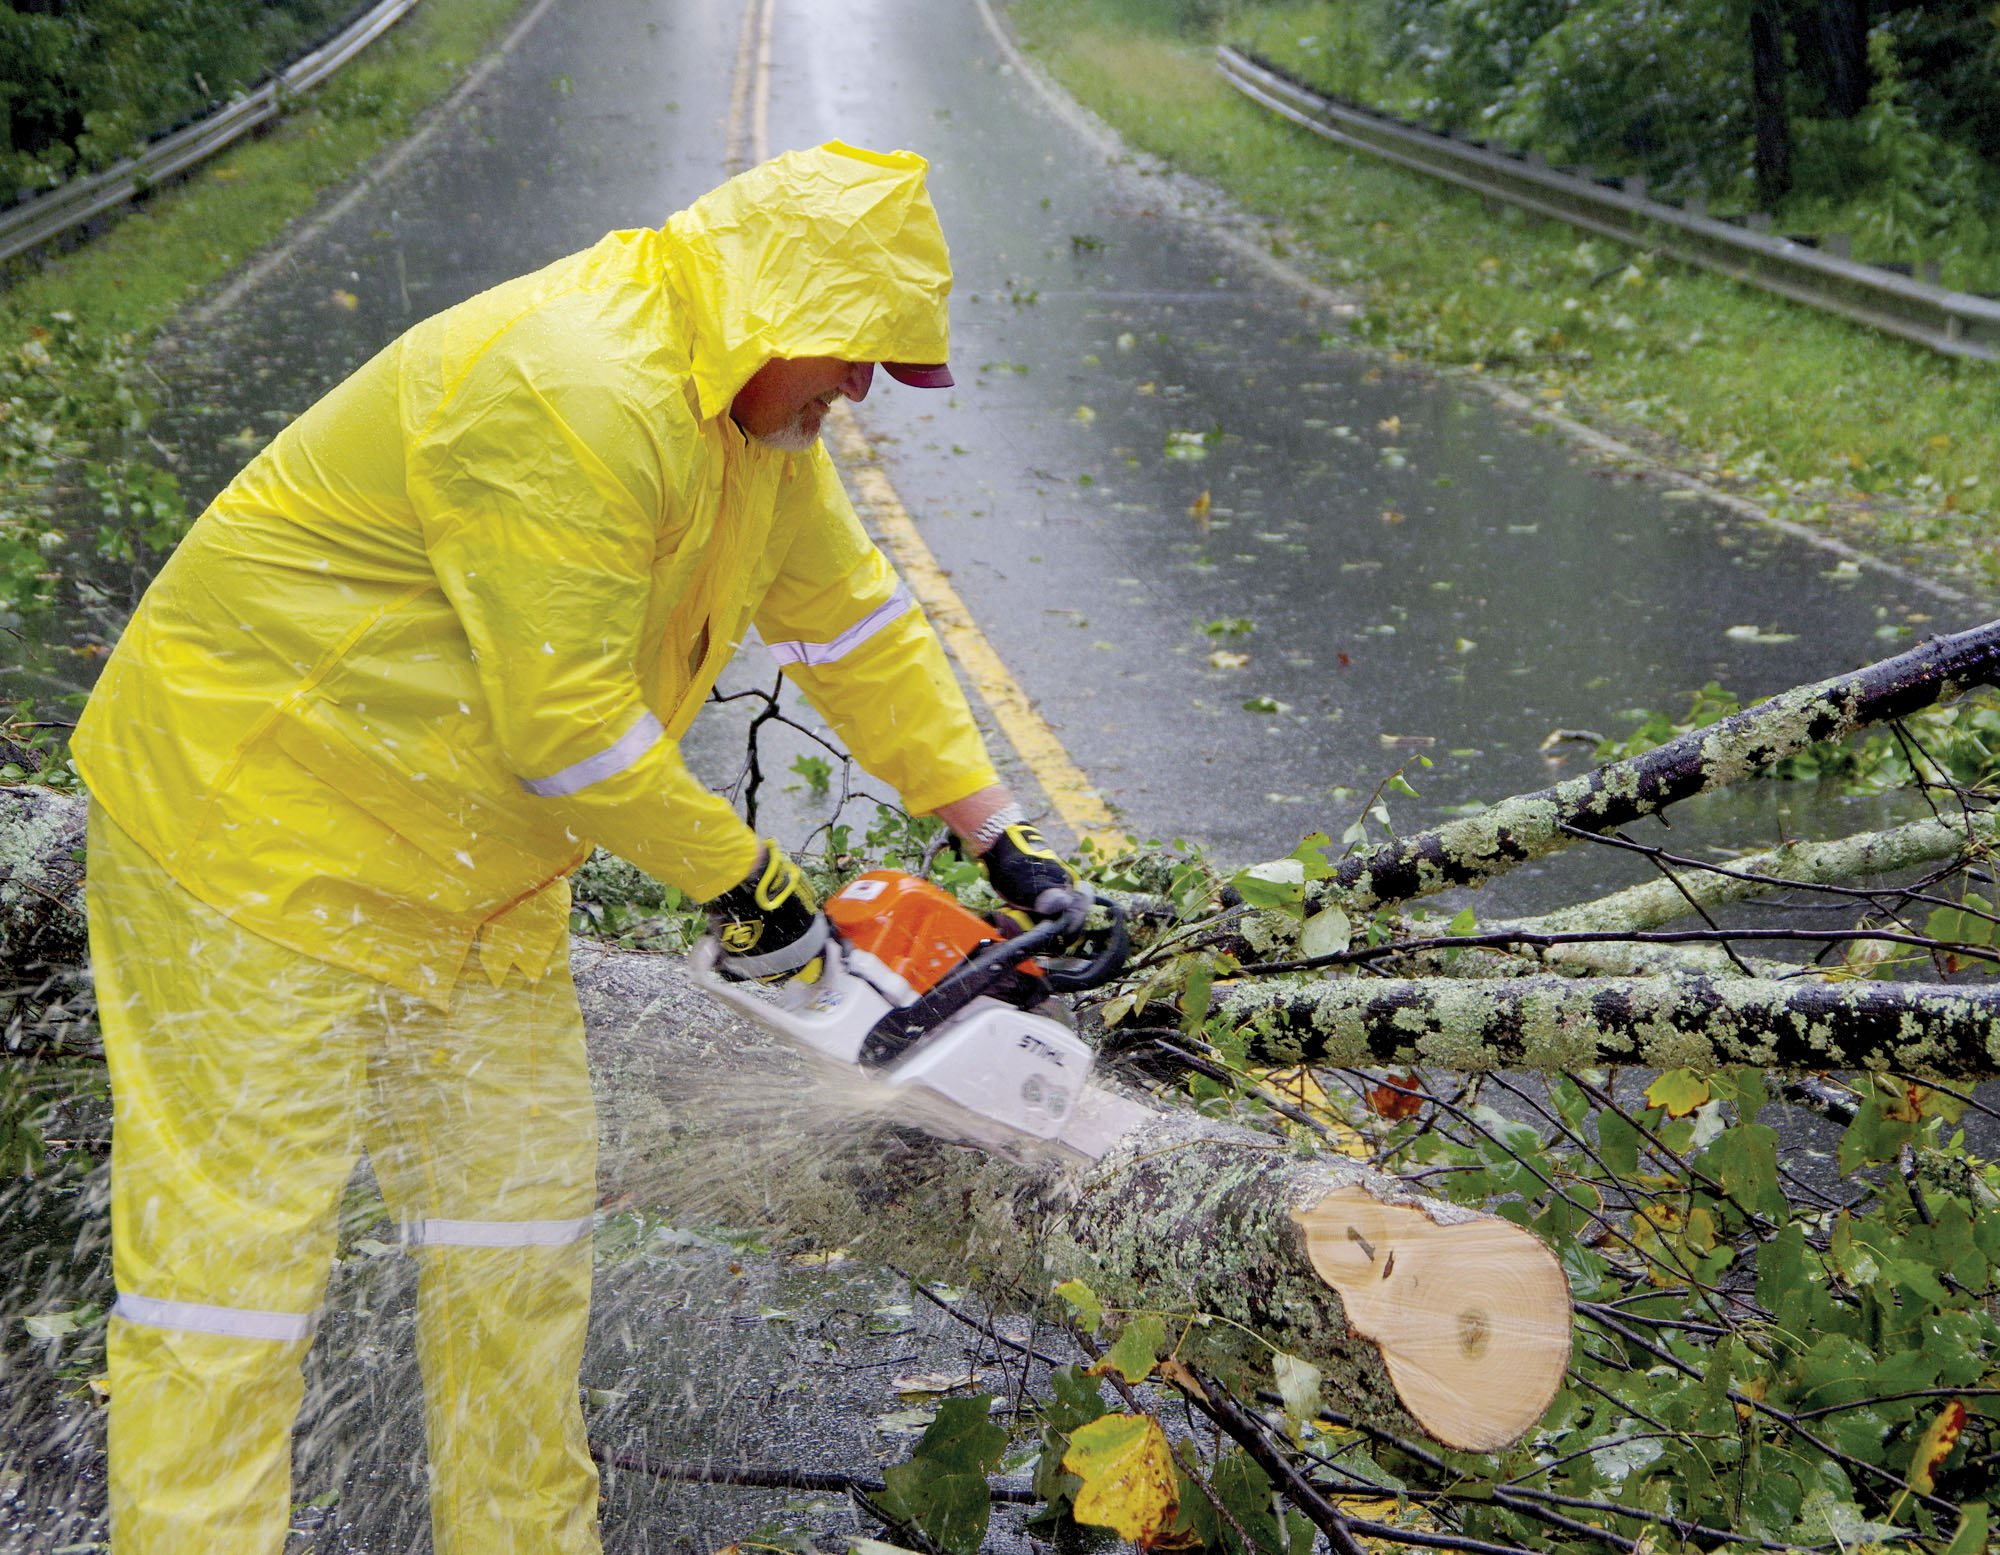 Cutting up a tree on Buford Dam Road